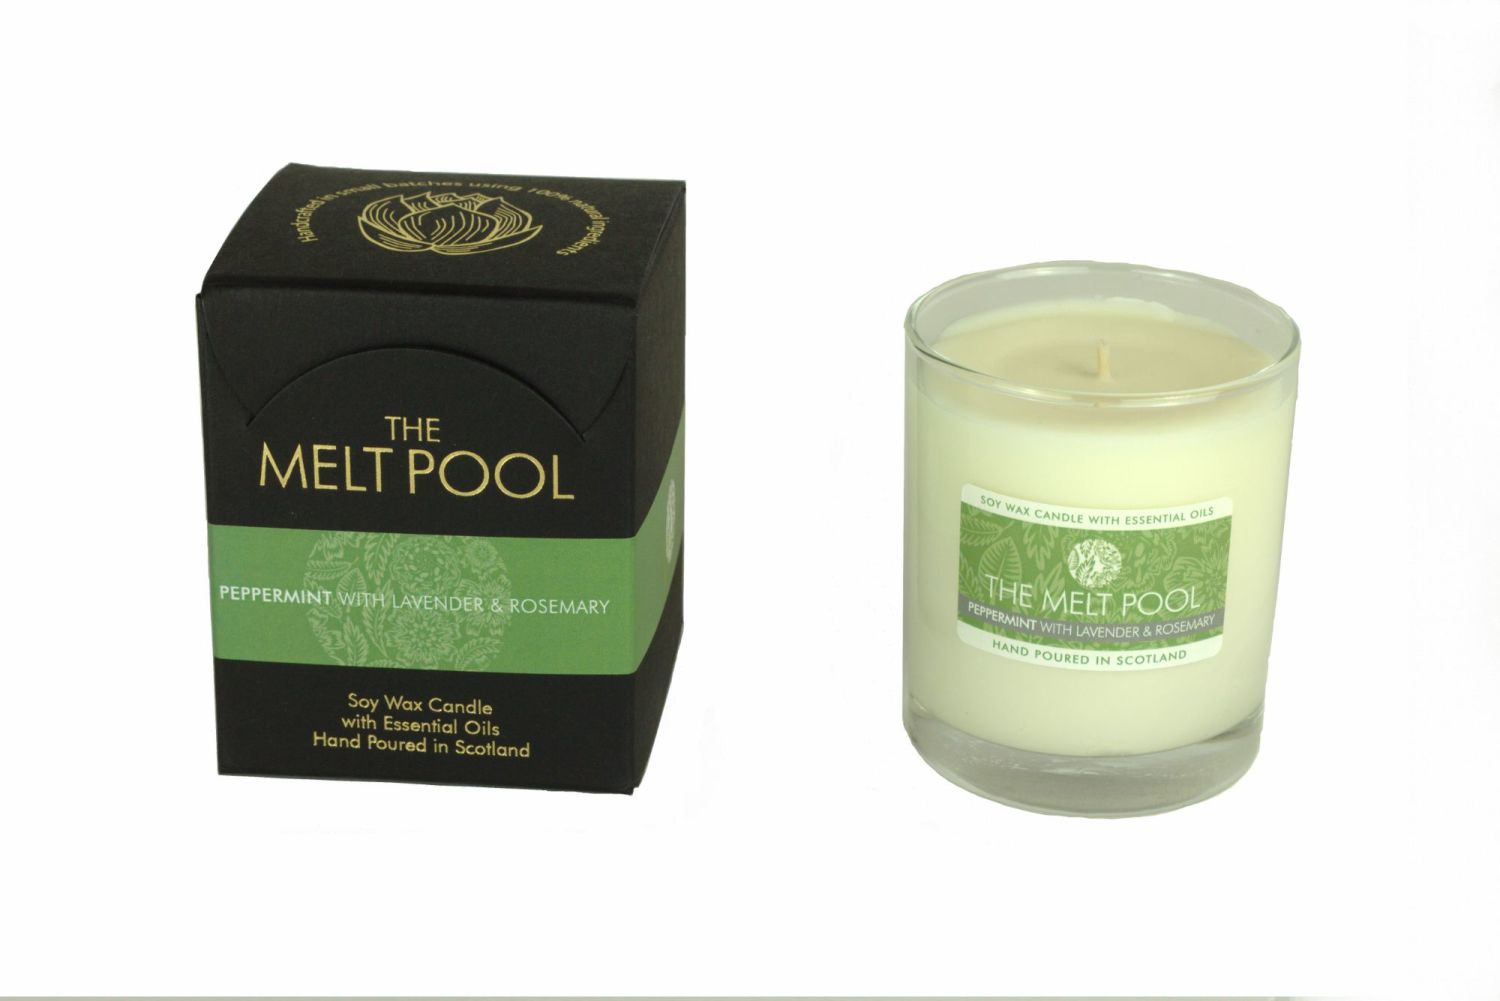 The Melt Pool Candle: Peppermint, Lavender